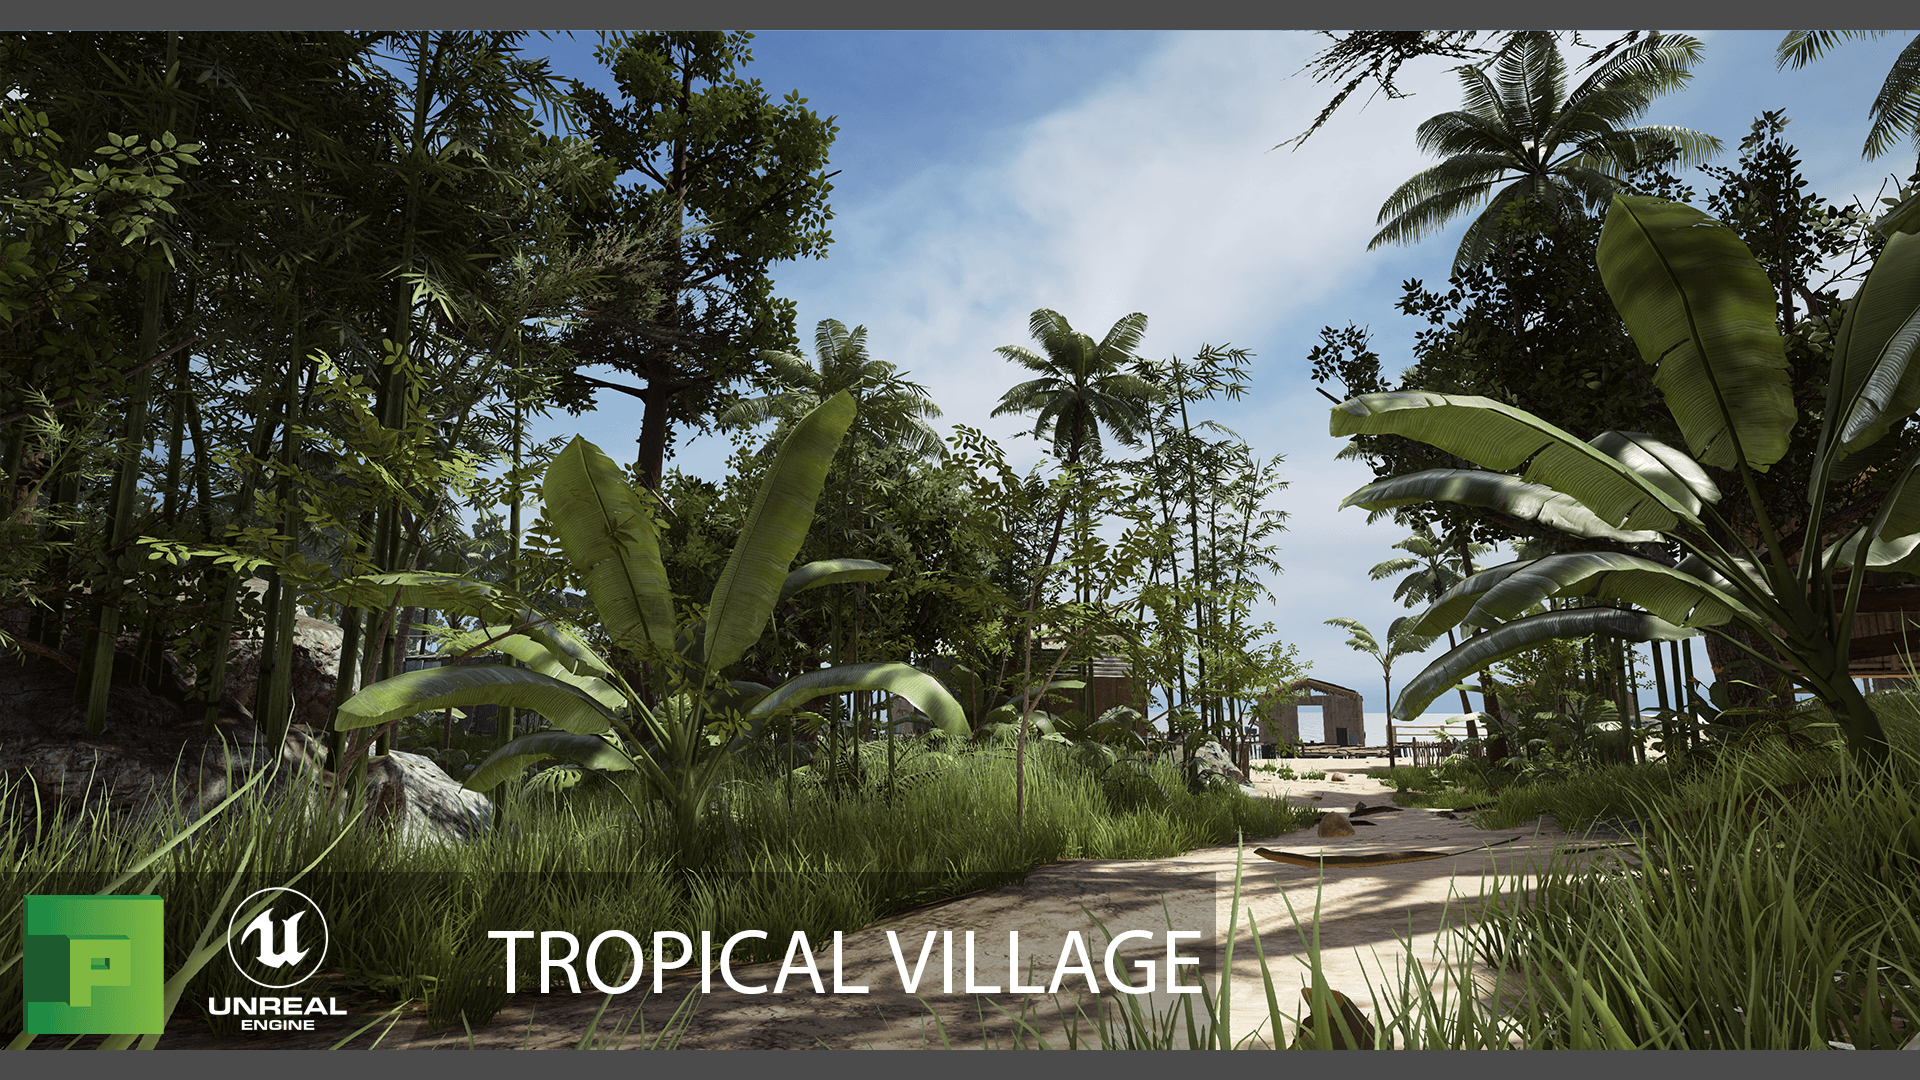 TropicalVillage_03